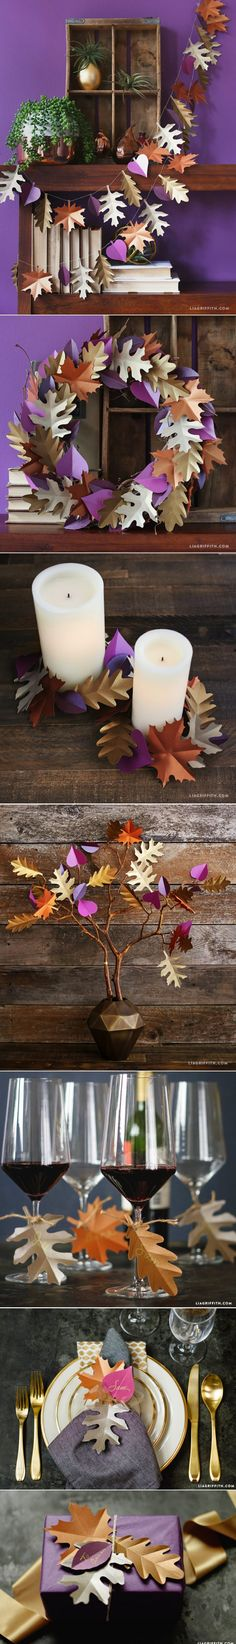 #falldecor #paperart #paperleaves #paperflowers #diydecor #decorateforfall www.LiaGriffith.com - created via https://pinthemall.net: